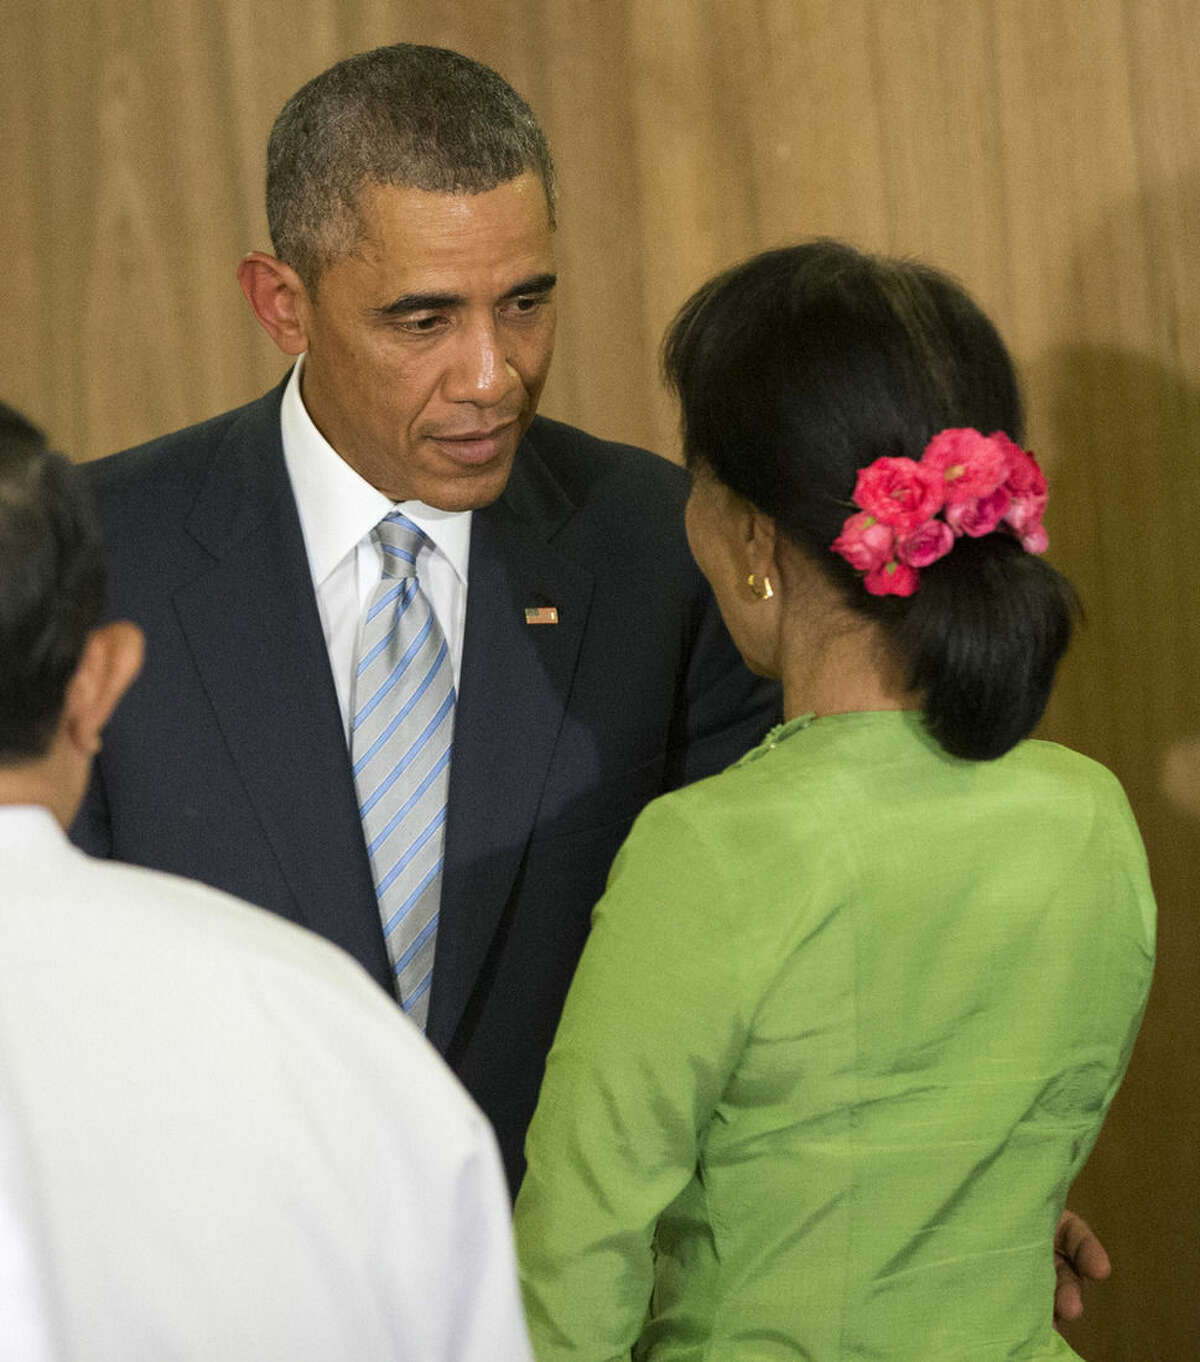 U.S. President Barack Obama, left, stops to talk with Myanmar's opposition leader Aung San Suu Kyi, right, following his meeting at the Roundtable at the Parliamentary Center, Thursday, Nov. 13, 2014 in Naypyitaw, Myanmar. (AP Photo/Pablo Martinez Monsivais)